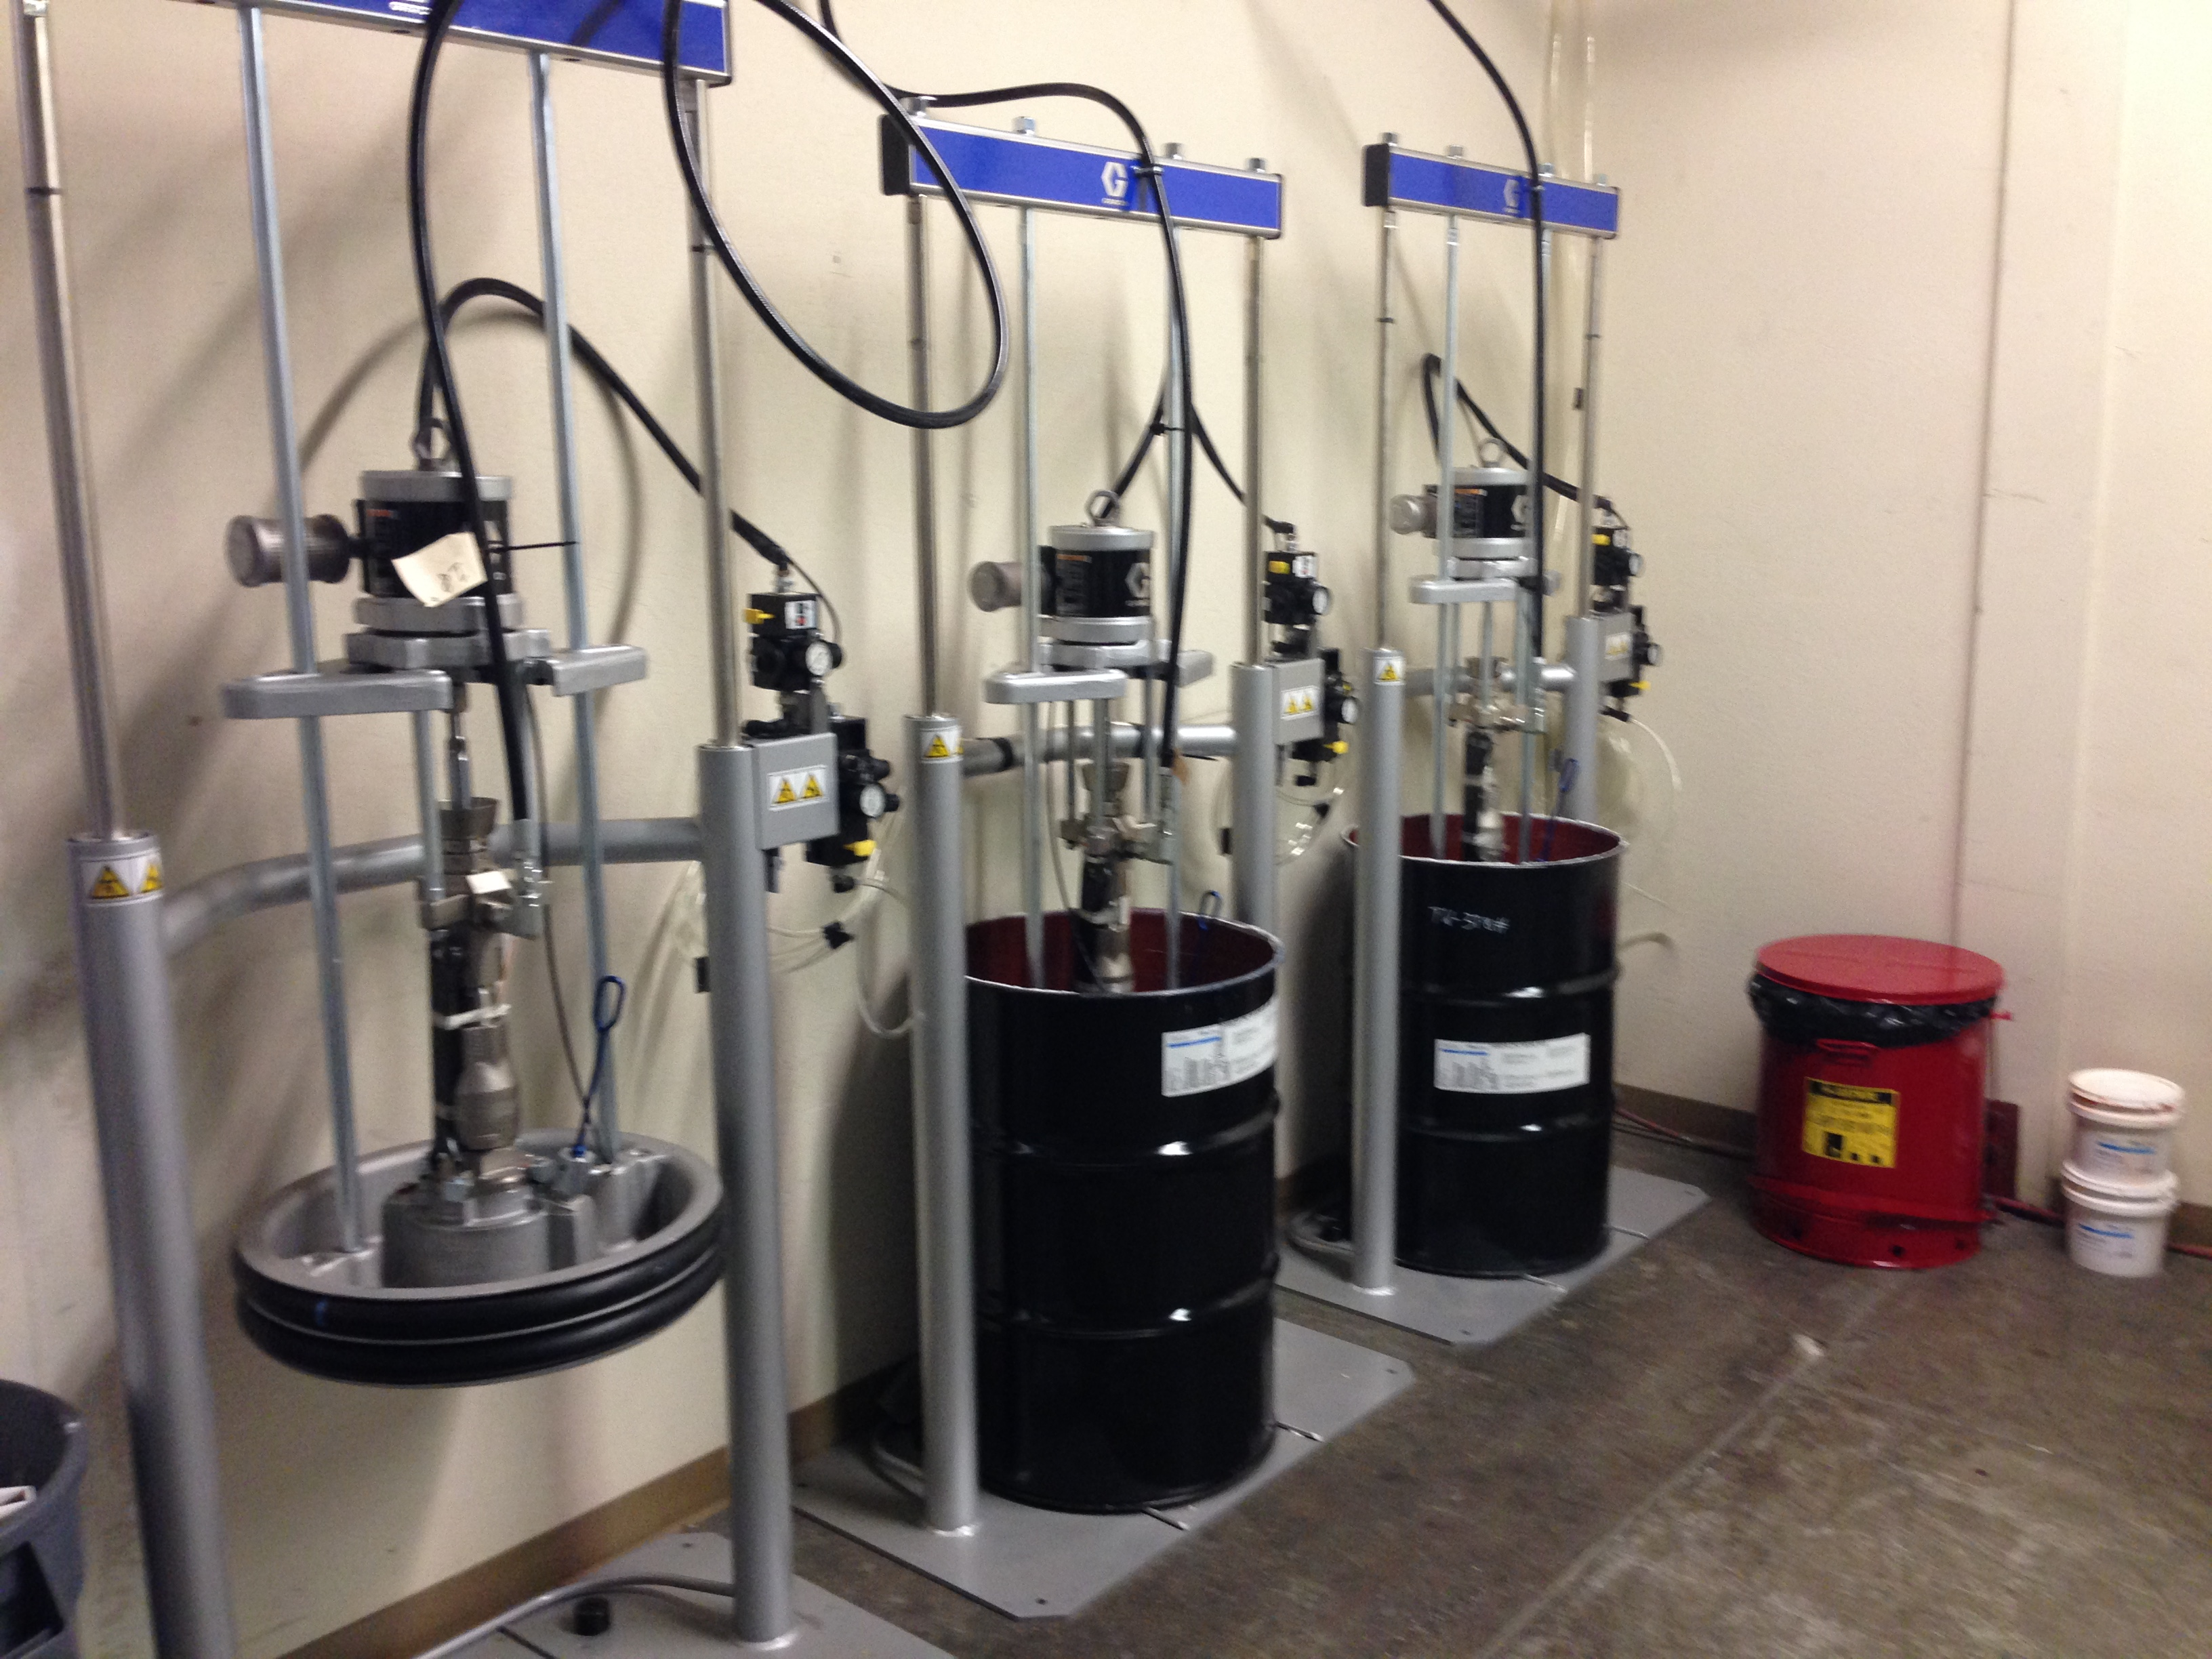 Drum pumps at Midwest Supply